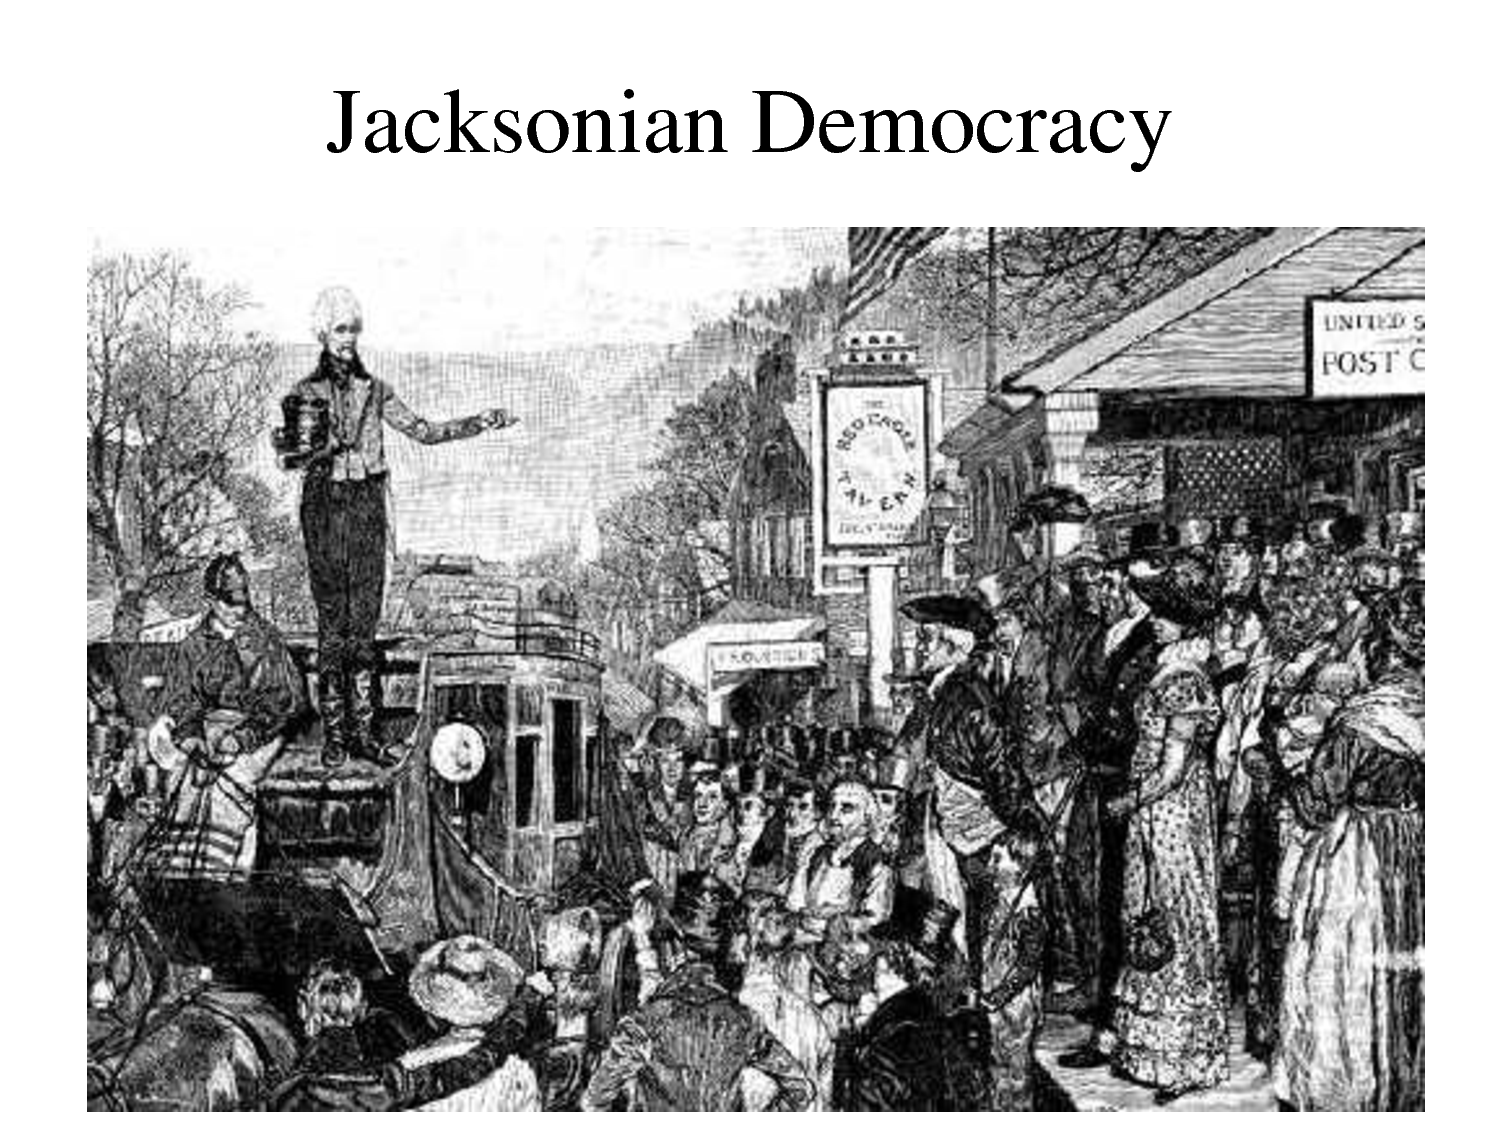 an analysis of the political faction of jacksonian democrats Democrats from the party's jacksonian wing harbored the hope that the transformation could his analysis created a kind of official party history that the party of andrew jackson developed into the champion of civil rights and a strong centralized government looks like a bizarre.